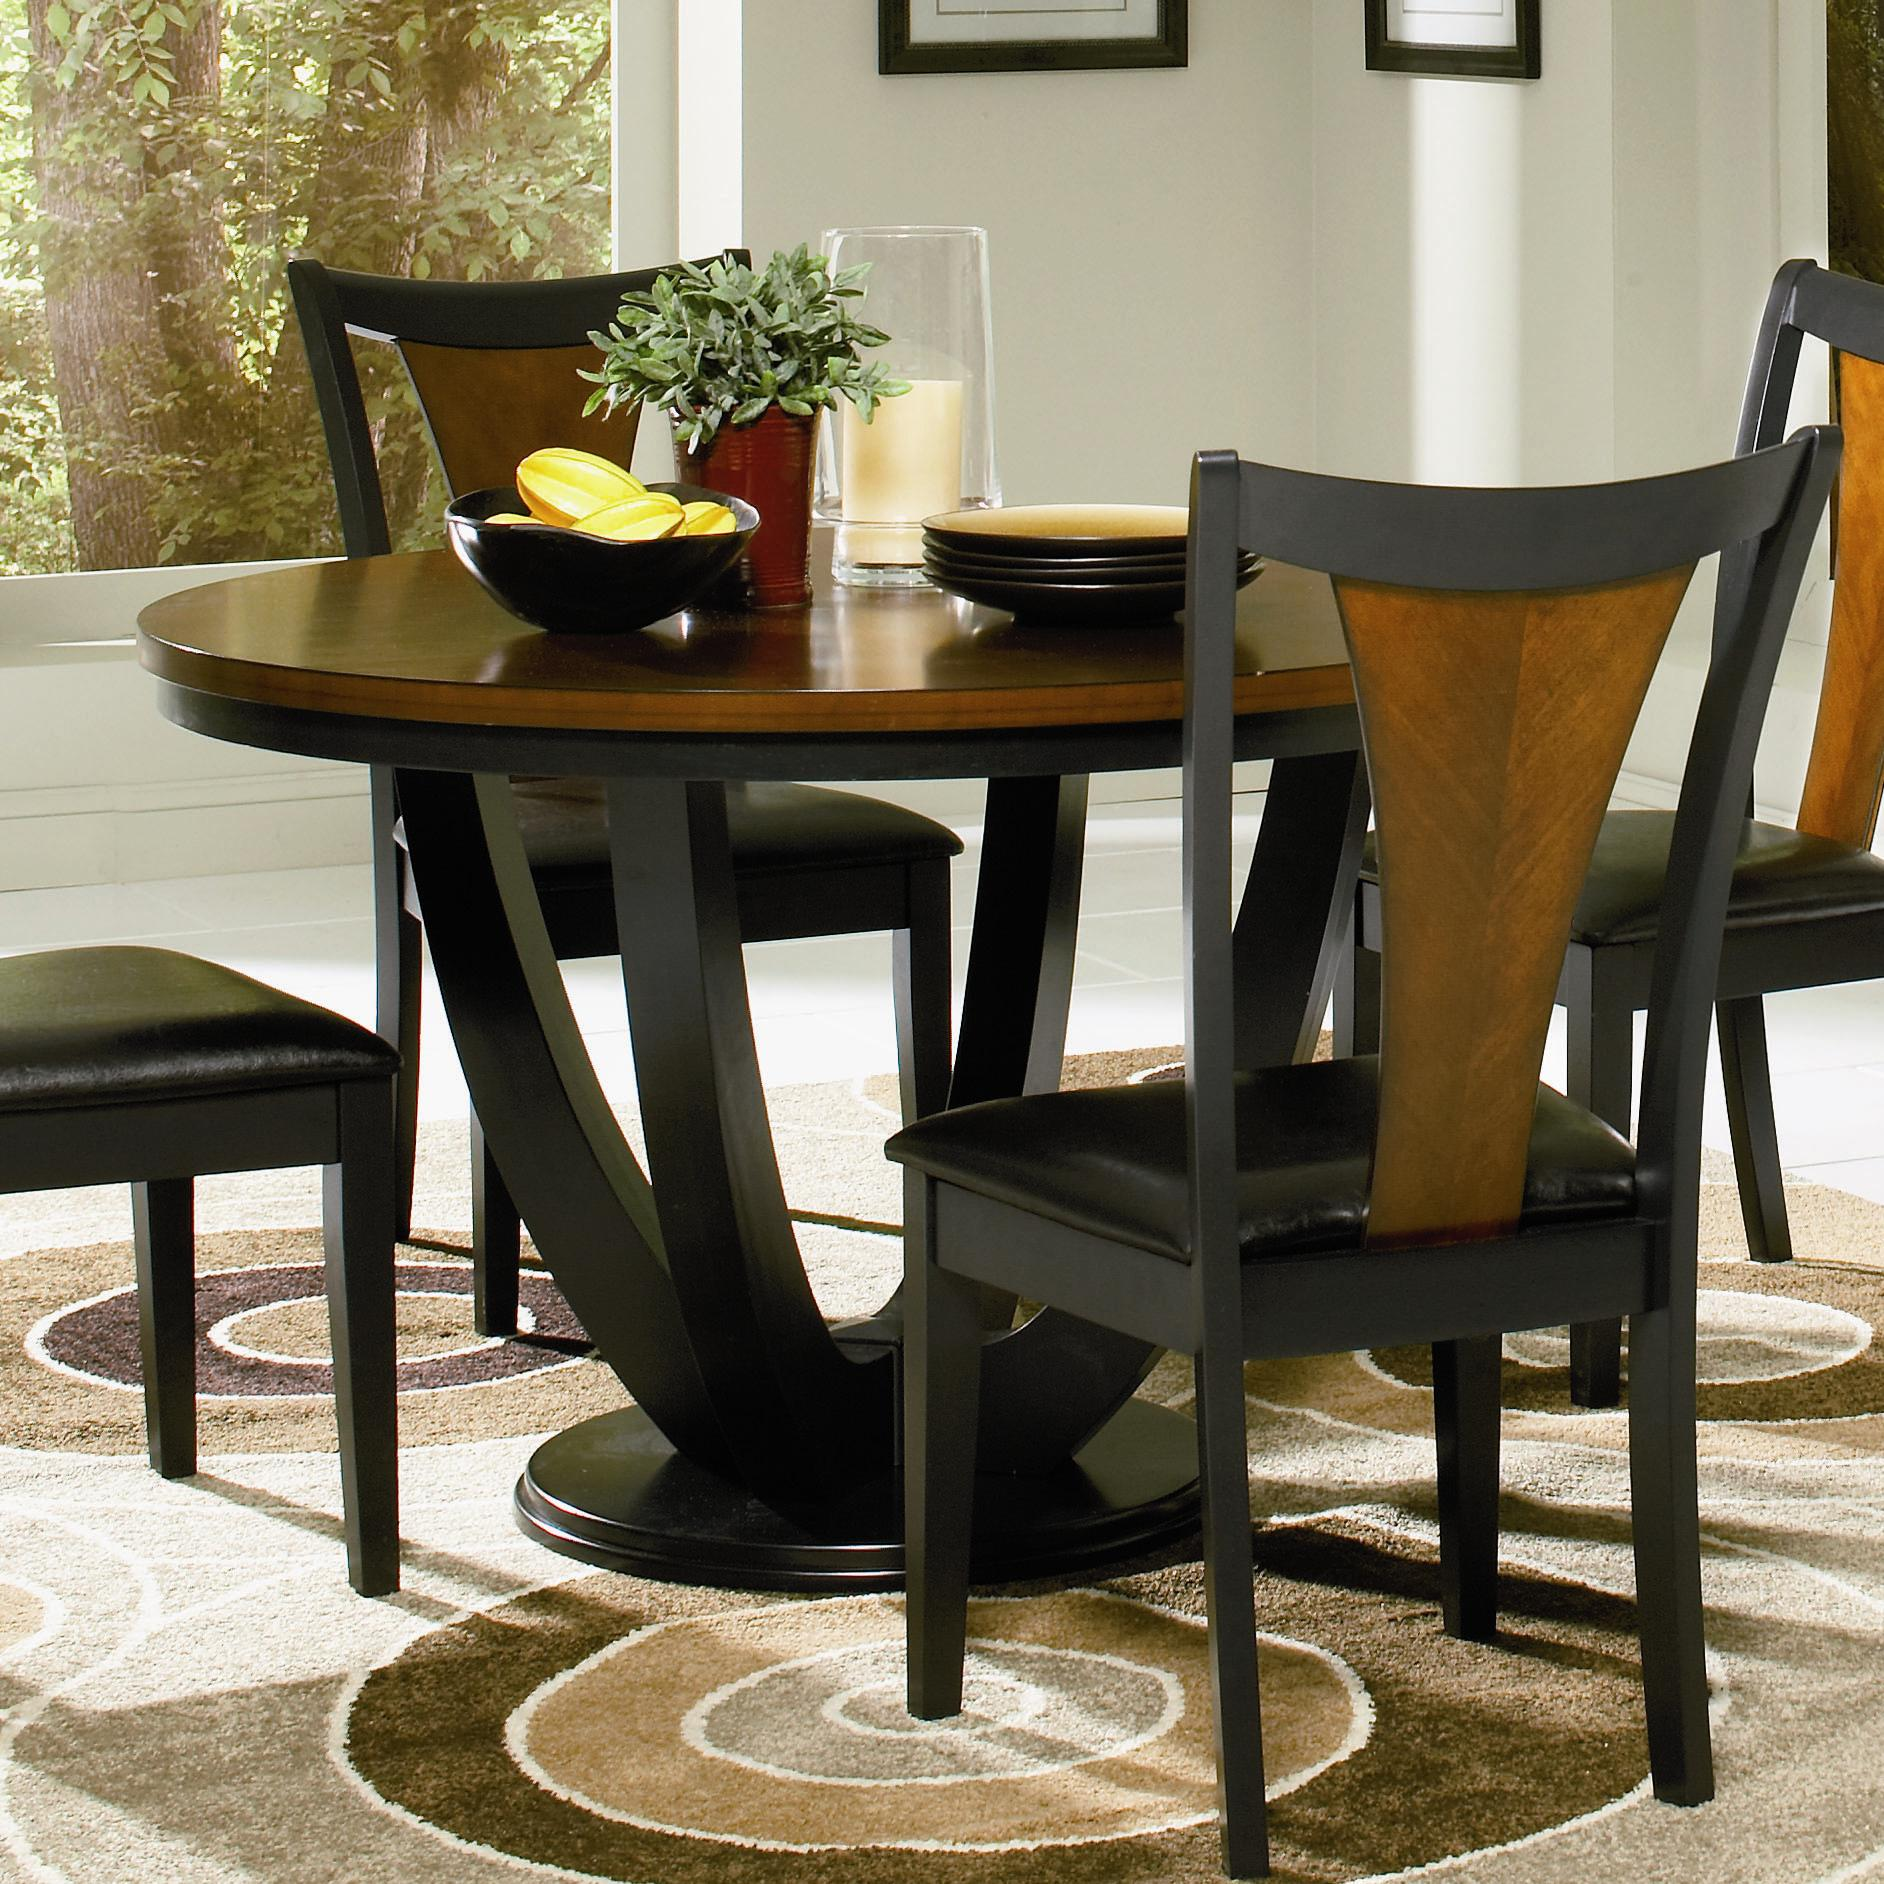 Coaster boyer round contemporary table dunk bright for Modern round kitchen table